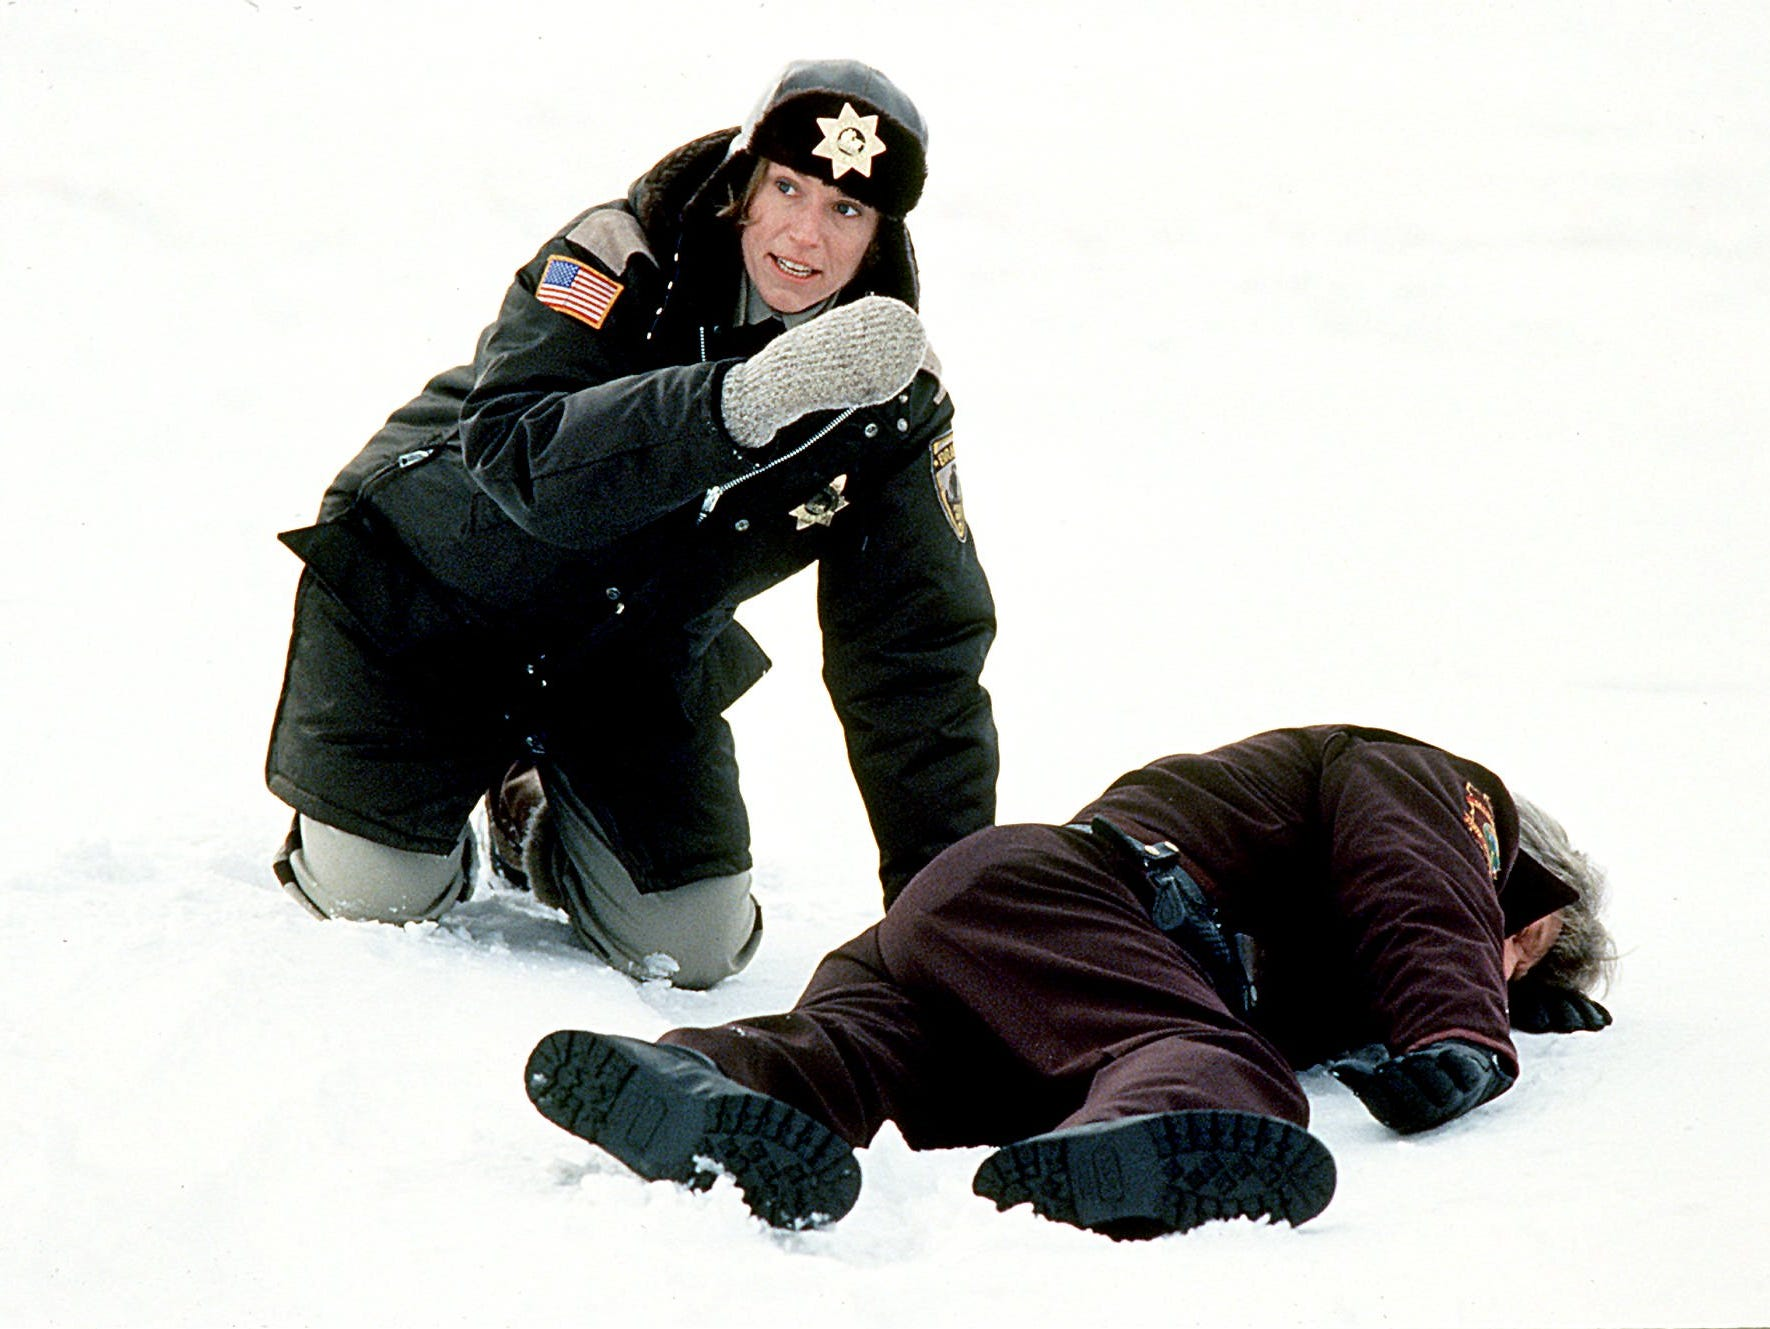 """Police Chief Marge Gunderson played by Frances McDormand looks for evidence at the crime scene in the new film """"Fargo""""  a film by Joel and Ethan Coen."""